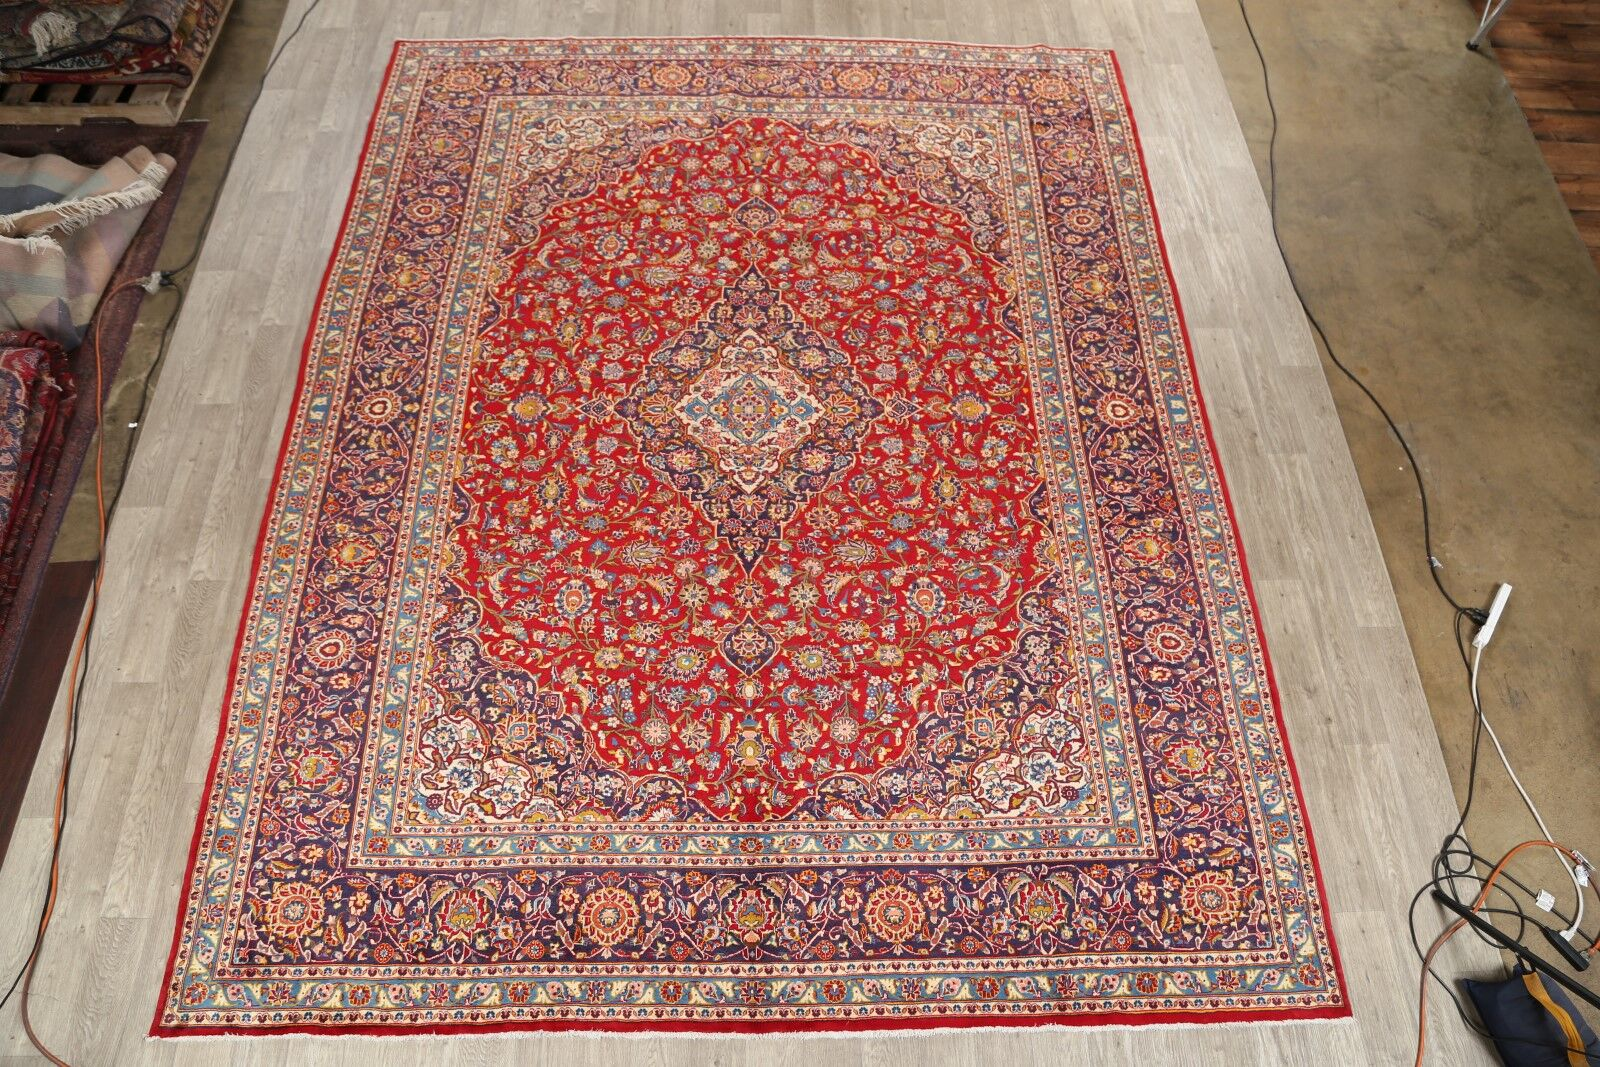 One-of-a-Kind Kashan Persian Traditional Vintage Hand-Knotted 10' x 12'7